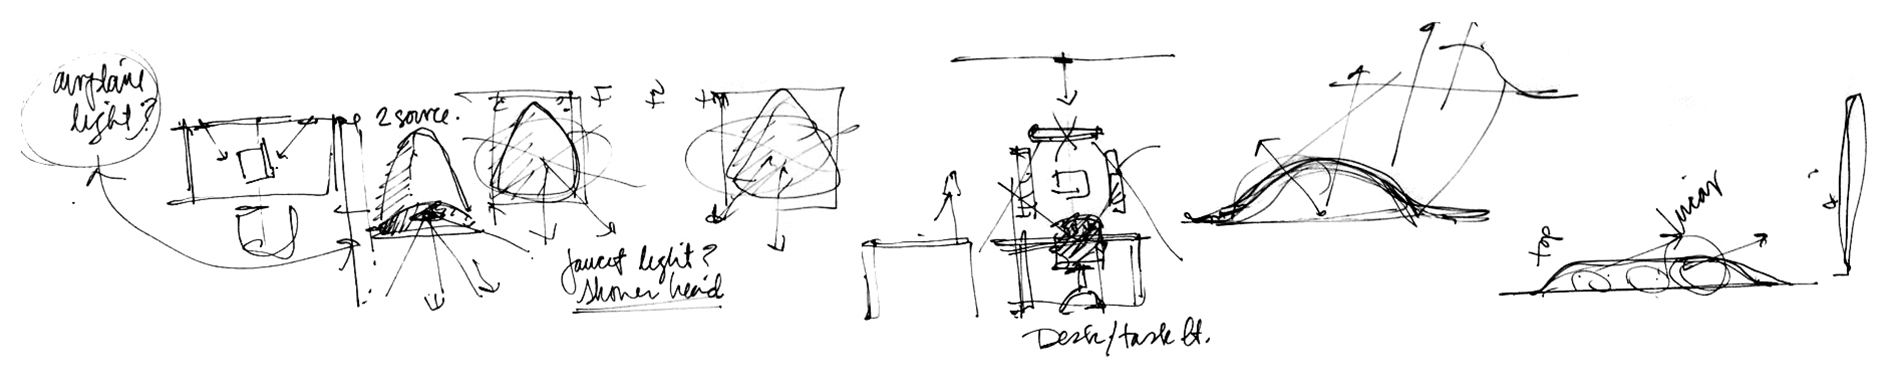 Design sketches for anti-ligature light fixtures in behavioral health environments